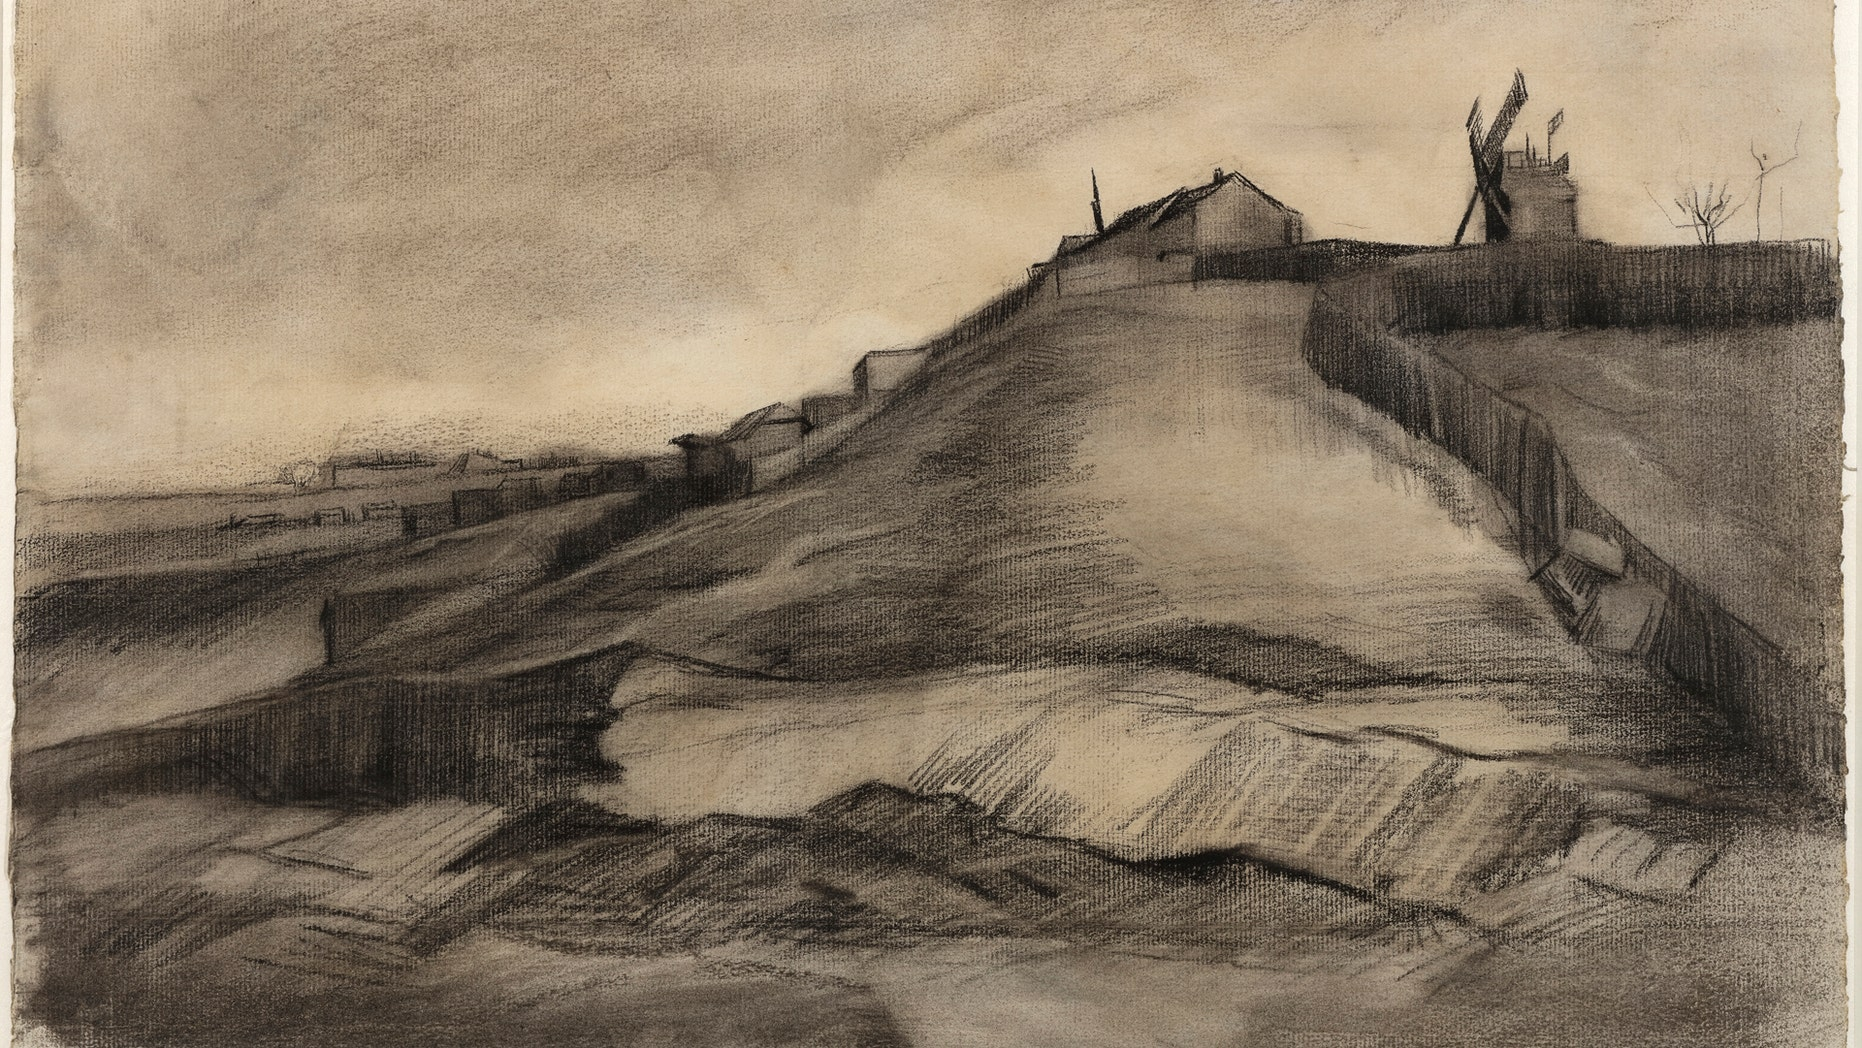 This image released by Van Vlissingen Art Foundation and the Van Gogh Museum on Tuesday Jan. 16, 2018 shows a drawing by Vincent van Gogh titled The Hill of Montmartre with Stone Quarry, dating to March 1886. The discovery has been confirmed following extensive research conducted by the Van Gogh Museum into the subject, style, technique, materials and provenance of the until now, unknown drawing in the collection of the Van Vlissingen Art Foundation. (Van Vlissingen Art Foundation via AP)